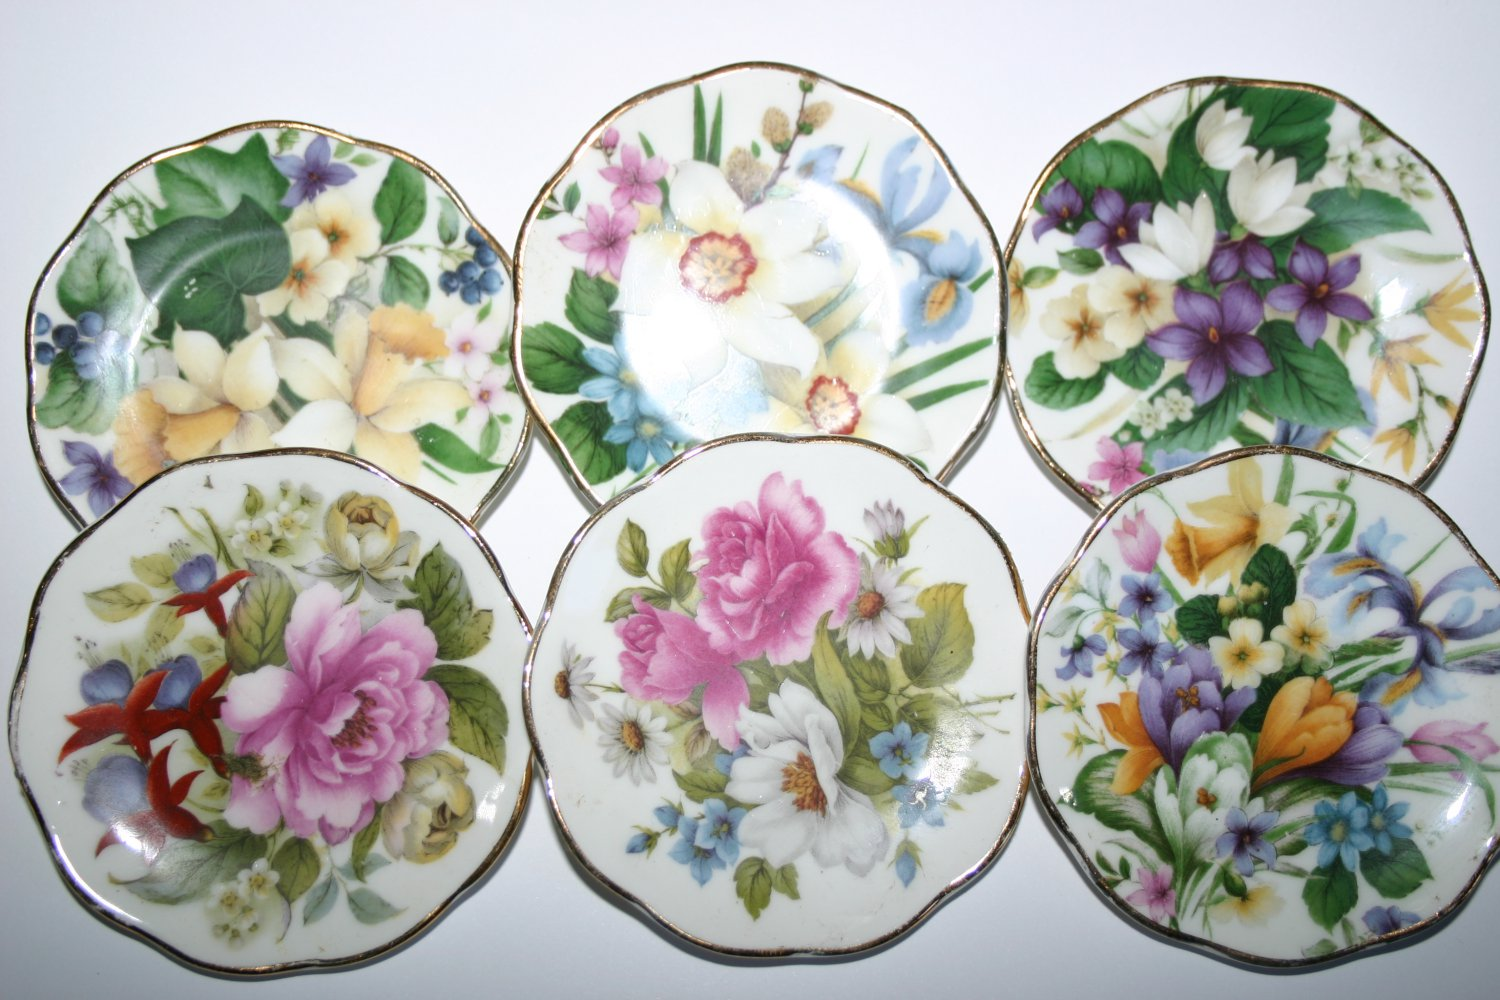 Miniature Flowers Of Summer Finest English Bone China Plate Collection